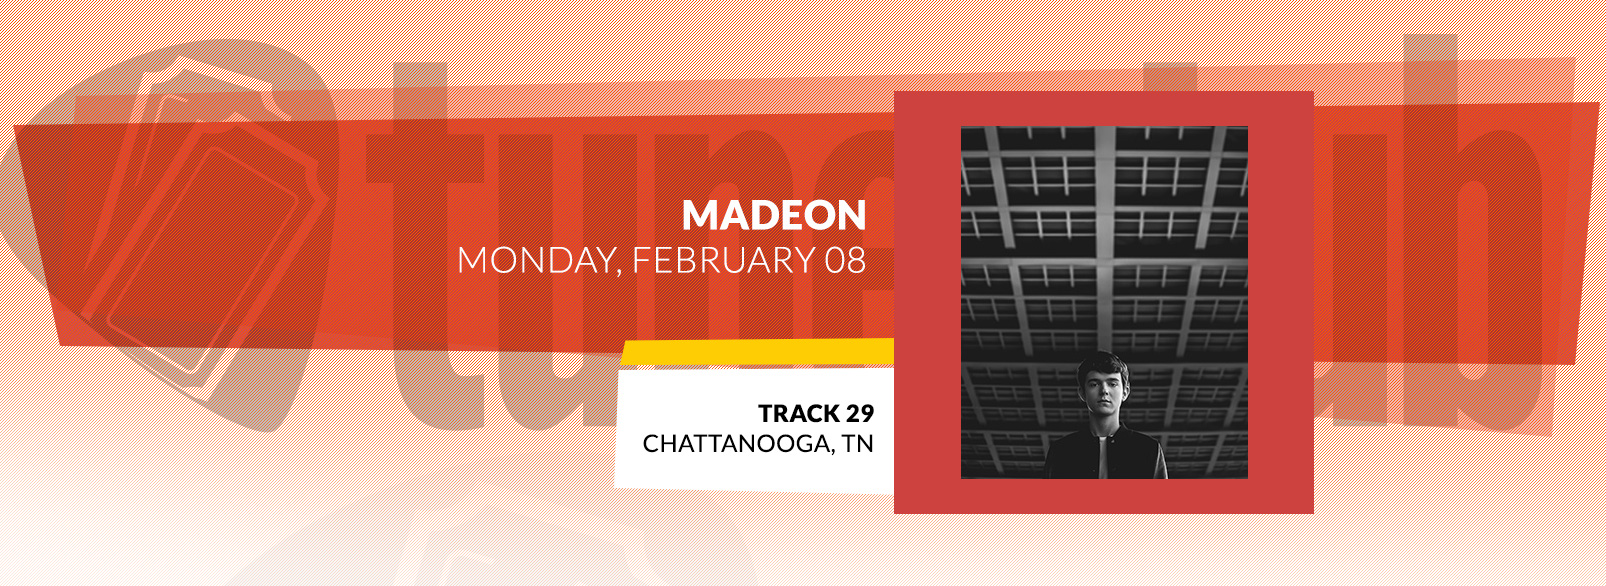 Madeon @ Track 29